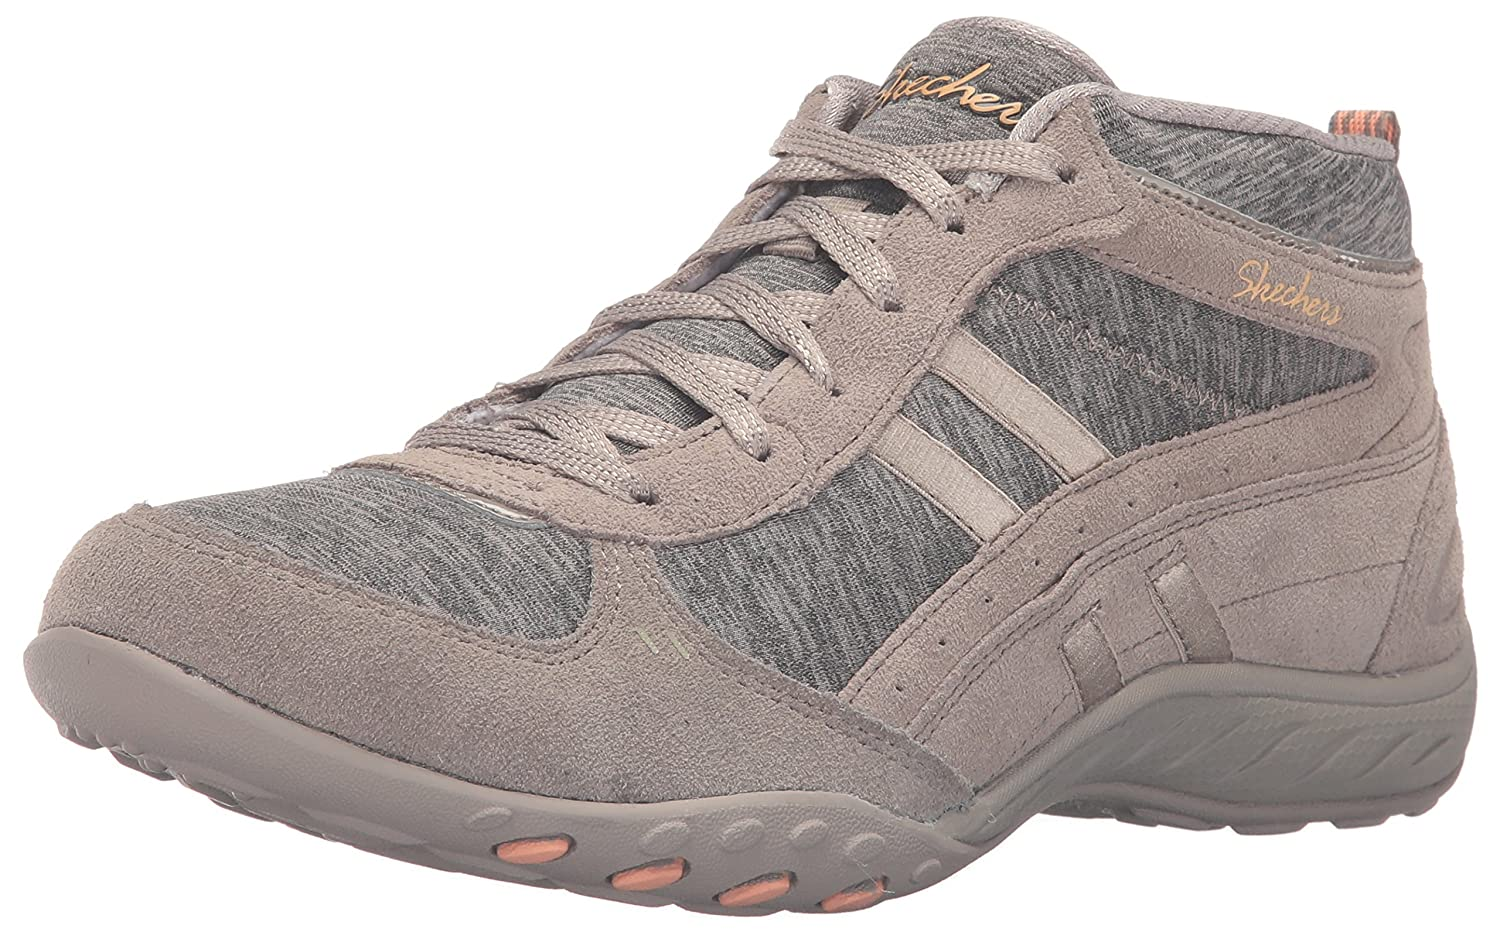 Skechers Sport Womens Breathe Easy Shout Out Fashion Sneaker  9.5 B(M) US|Taupe Suede/Jersey/Peach Trim